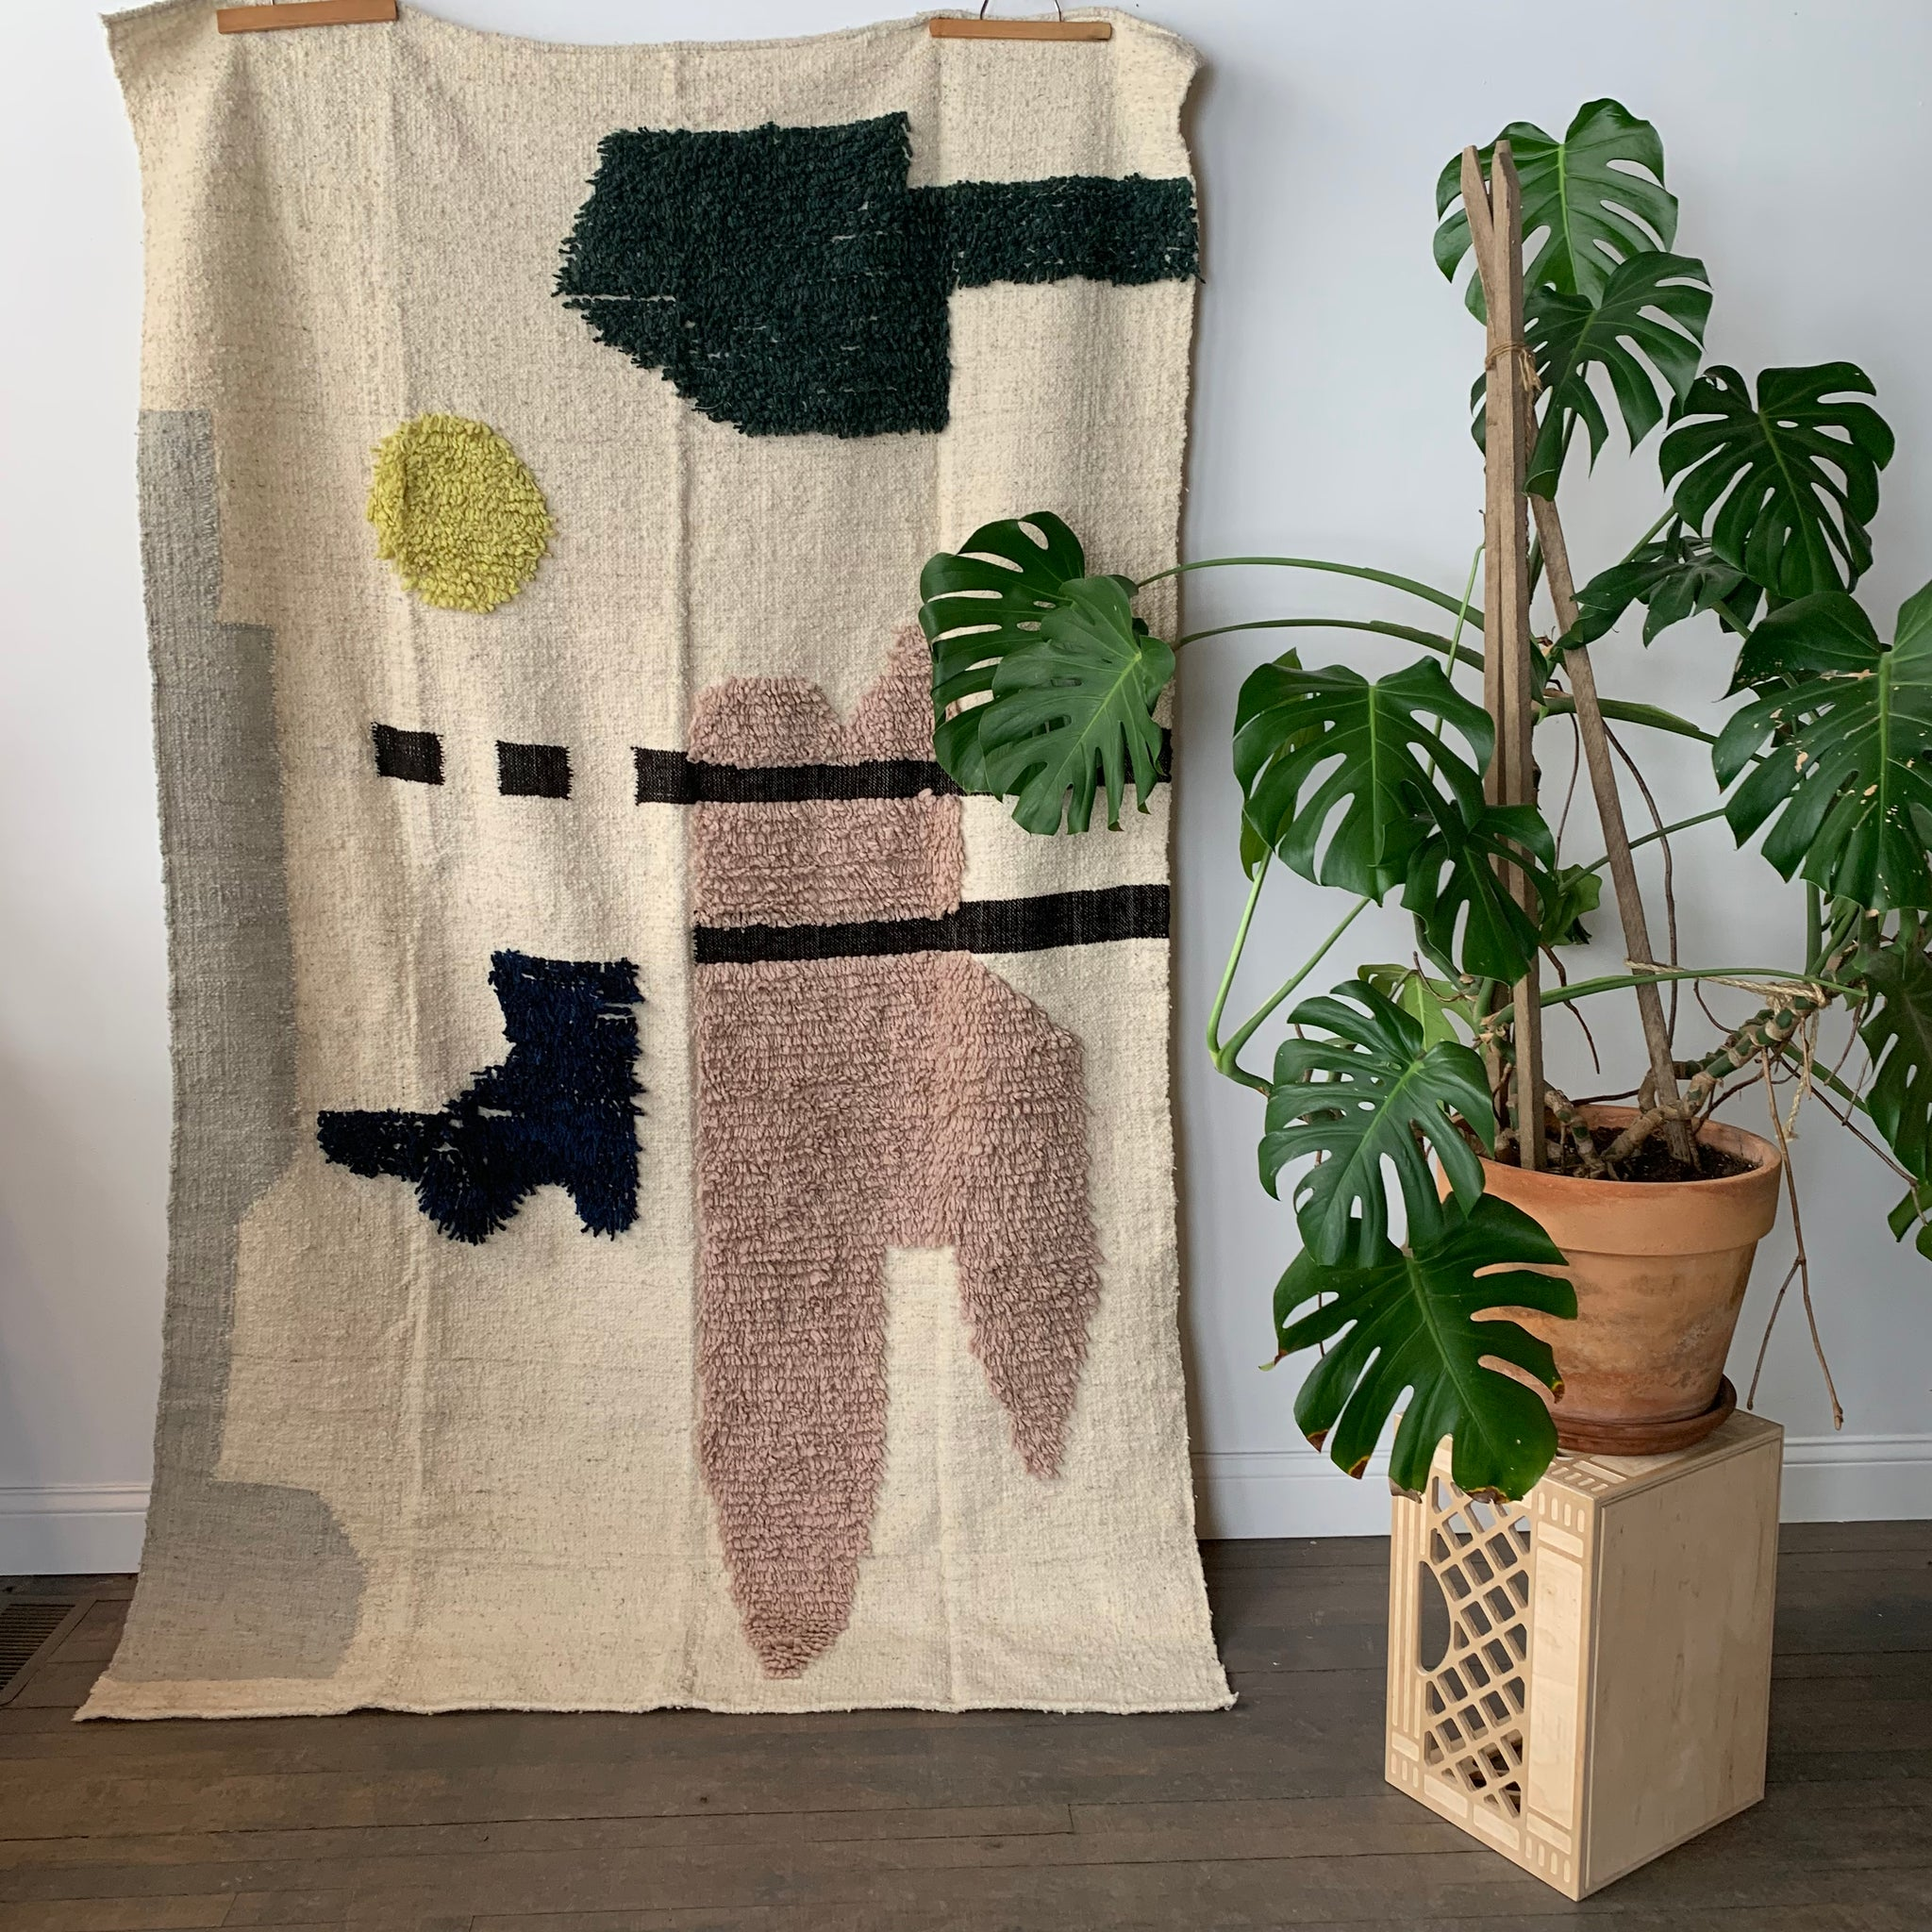 Dove Handmade Wool Rug by Meso Goods - Upstate MN